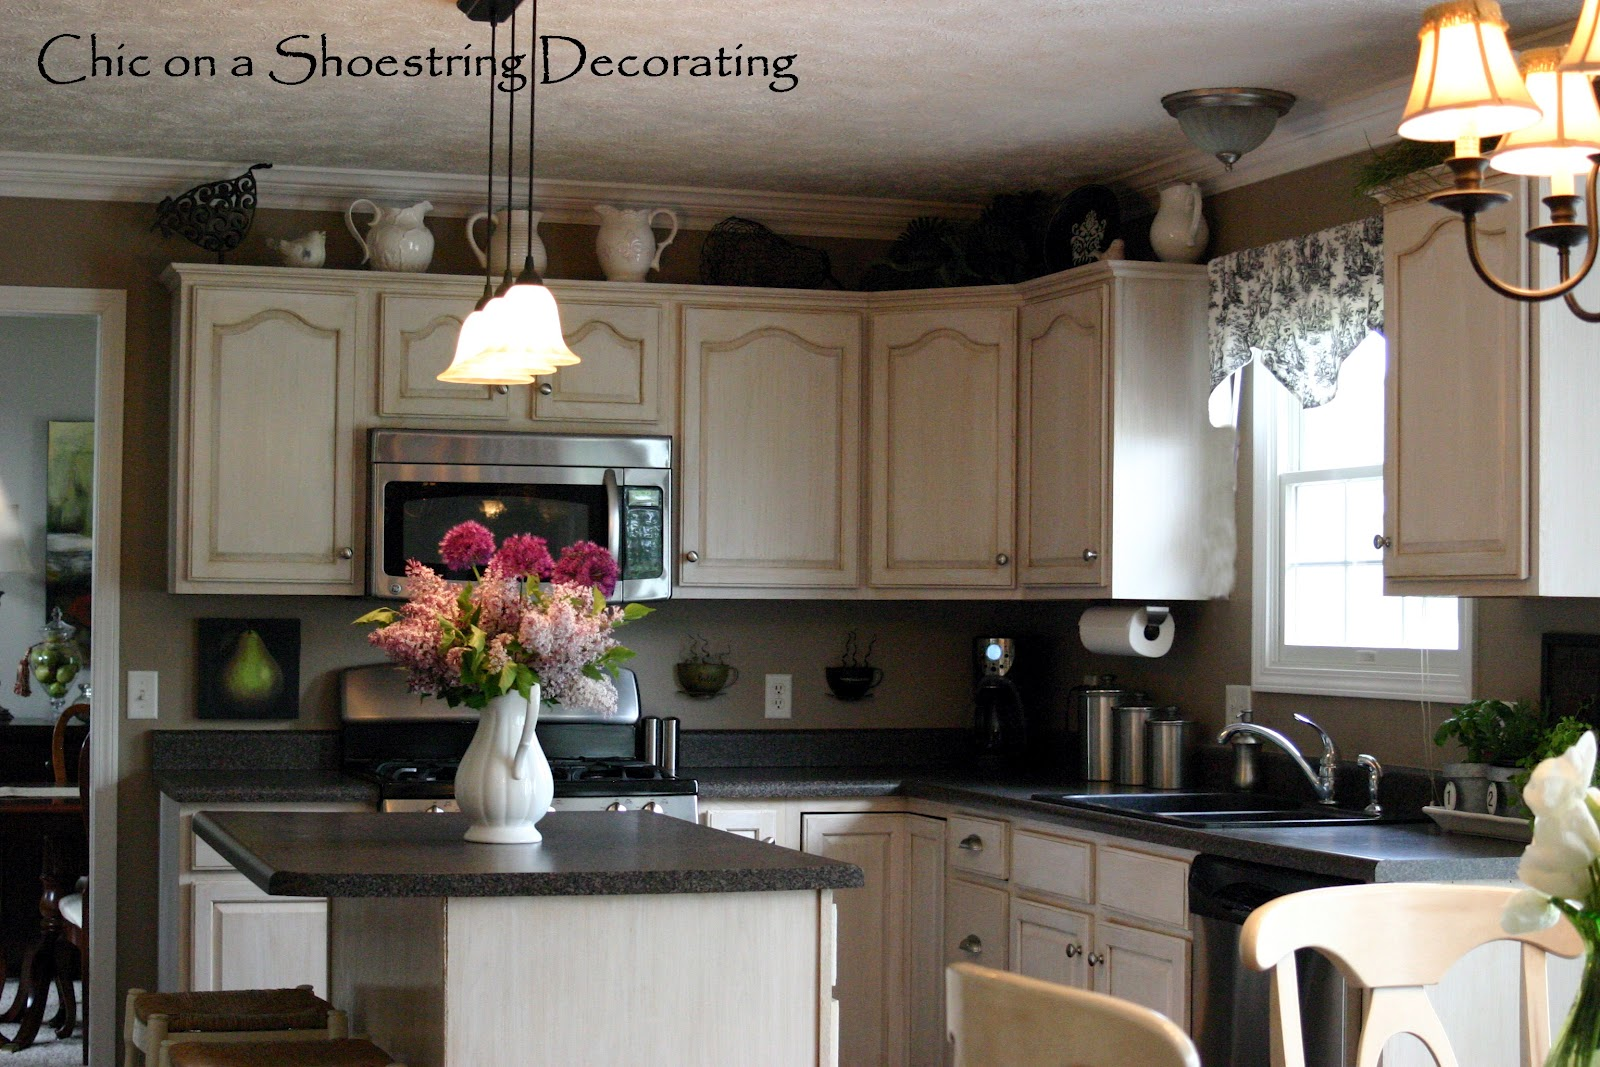 How To Decorate Top Kitchen Cabinet For Spring - Inspirational